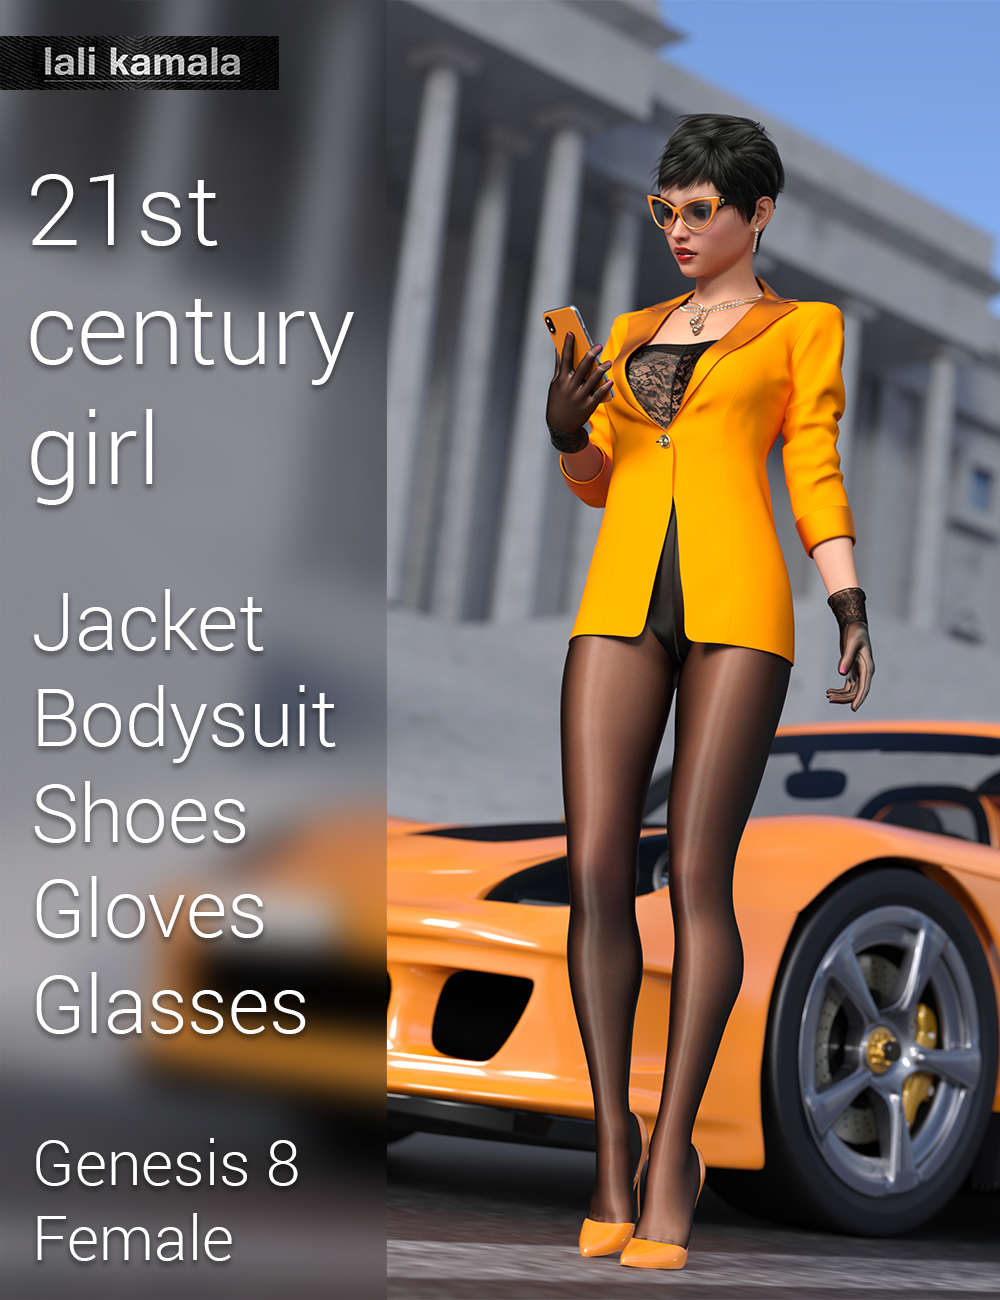 21st Century Girl Outfit for Genesis 8 Female(s) by: Lali Kamala, 3D Models by Daz 3D